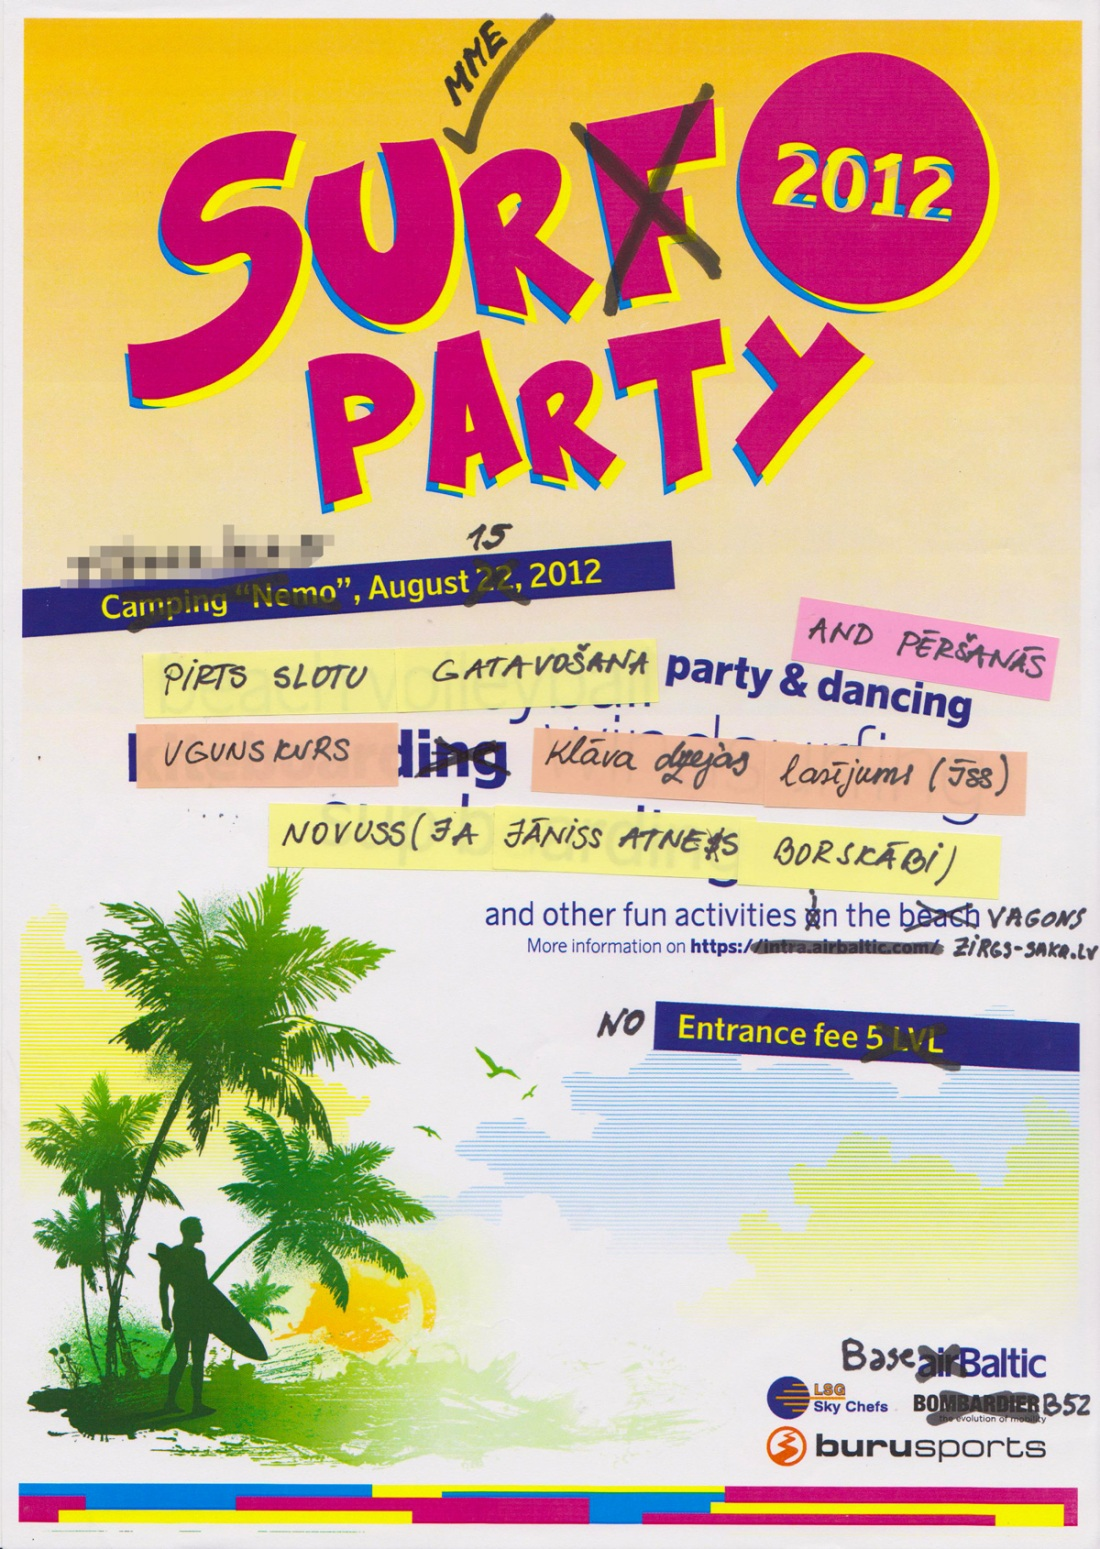 JekabsonsDotCom_Basebaltic_airBaltic_Surf_Summer_Party_Poster_2012_diy